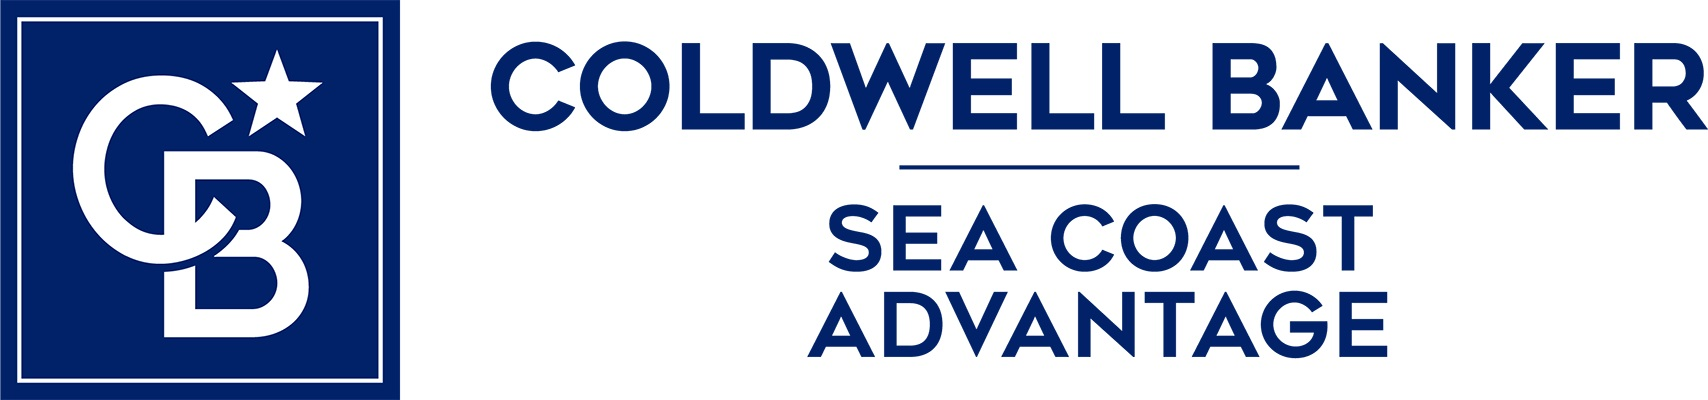 Dennis Krueger - Coldwell Banker Sea Coast Advantage Realty